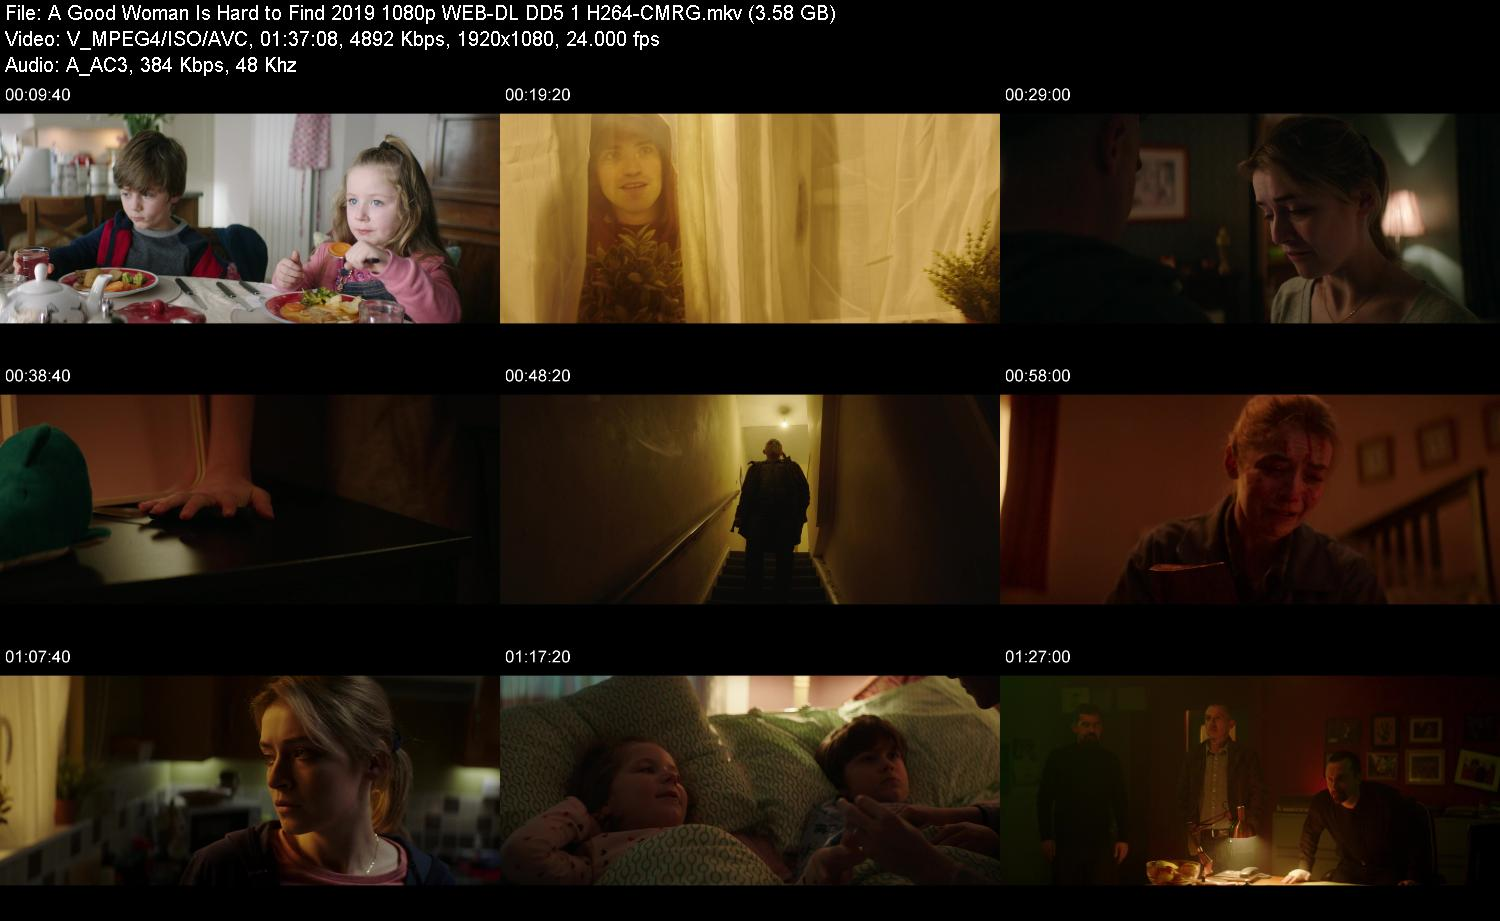 A Good Woman Is Hard to Find 2019 1080p WEB-DL DD5 1 H264-CMRG